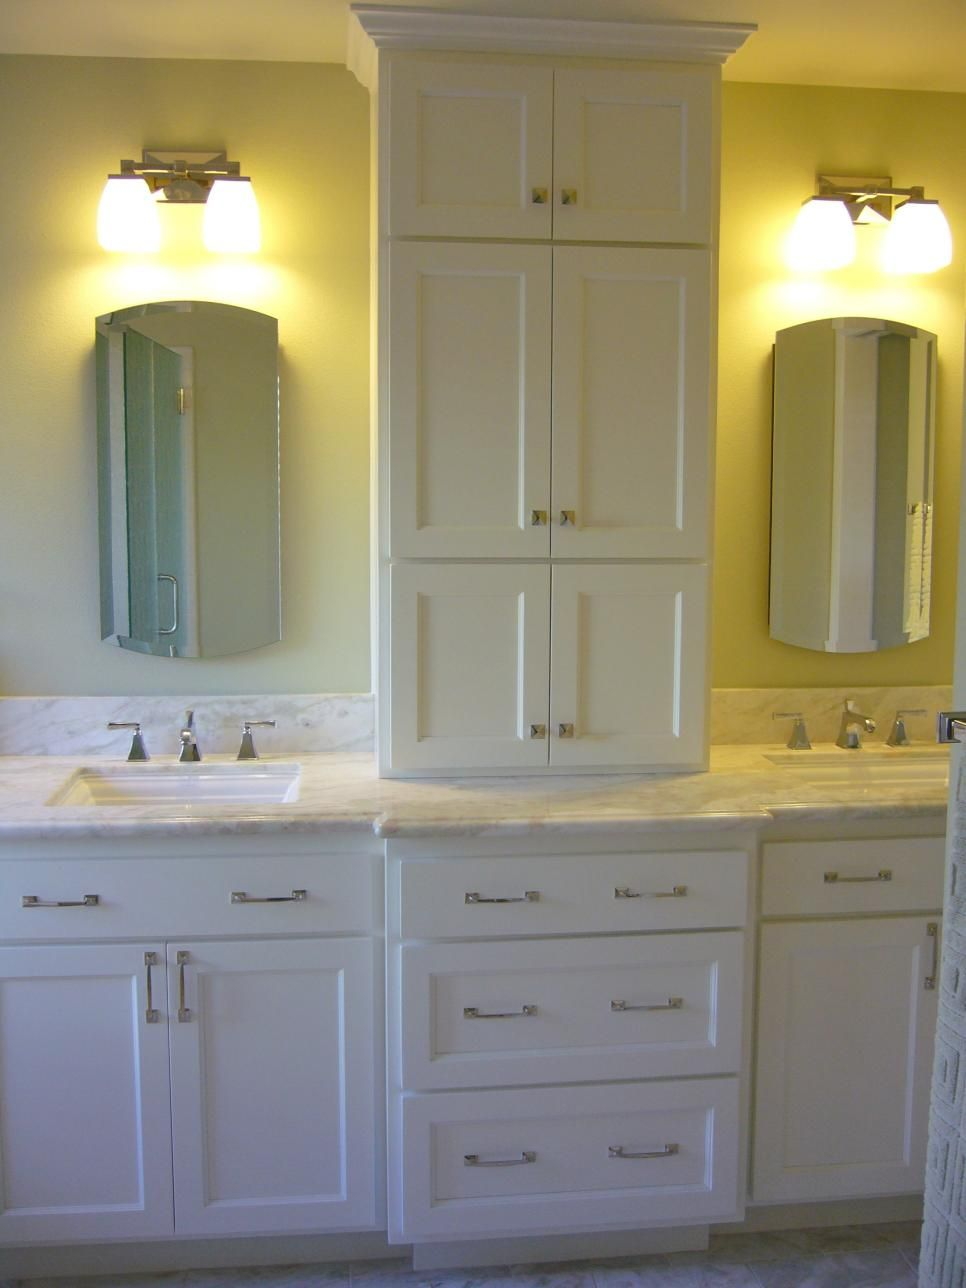 Custom Bathroom Double Vanities bathroom vanities for any style | sinks, storage and bathroom vanities